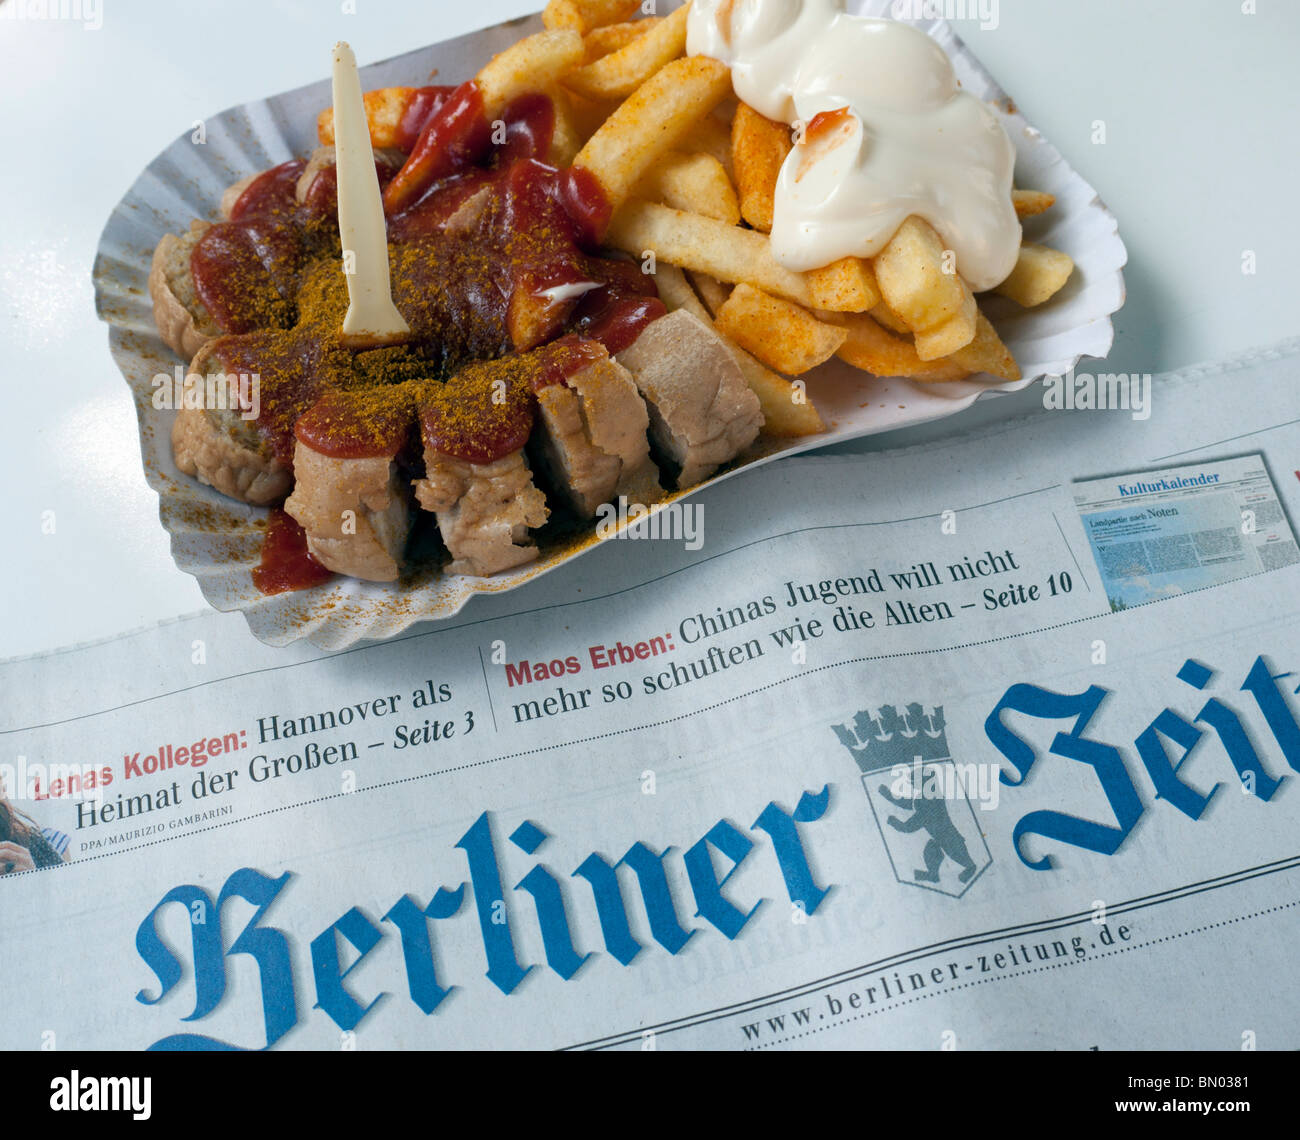 Detail of traditional Berlin currywurst snack at famous Konnopke`s currywurst stall in Prenzlauer Berg in Berlin - Stock Image